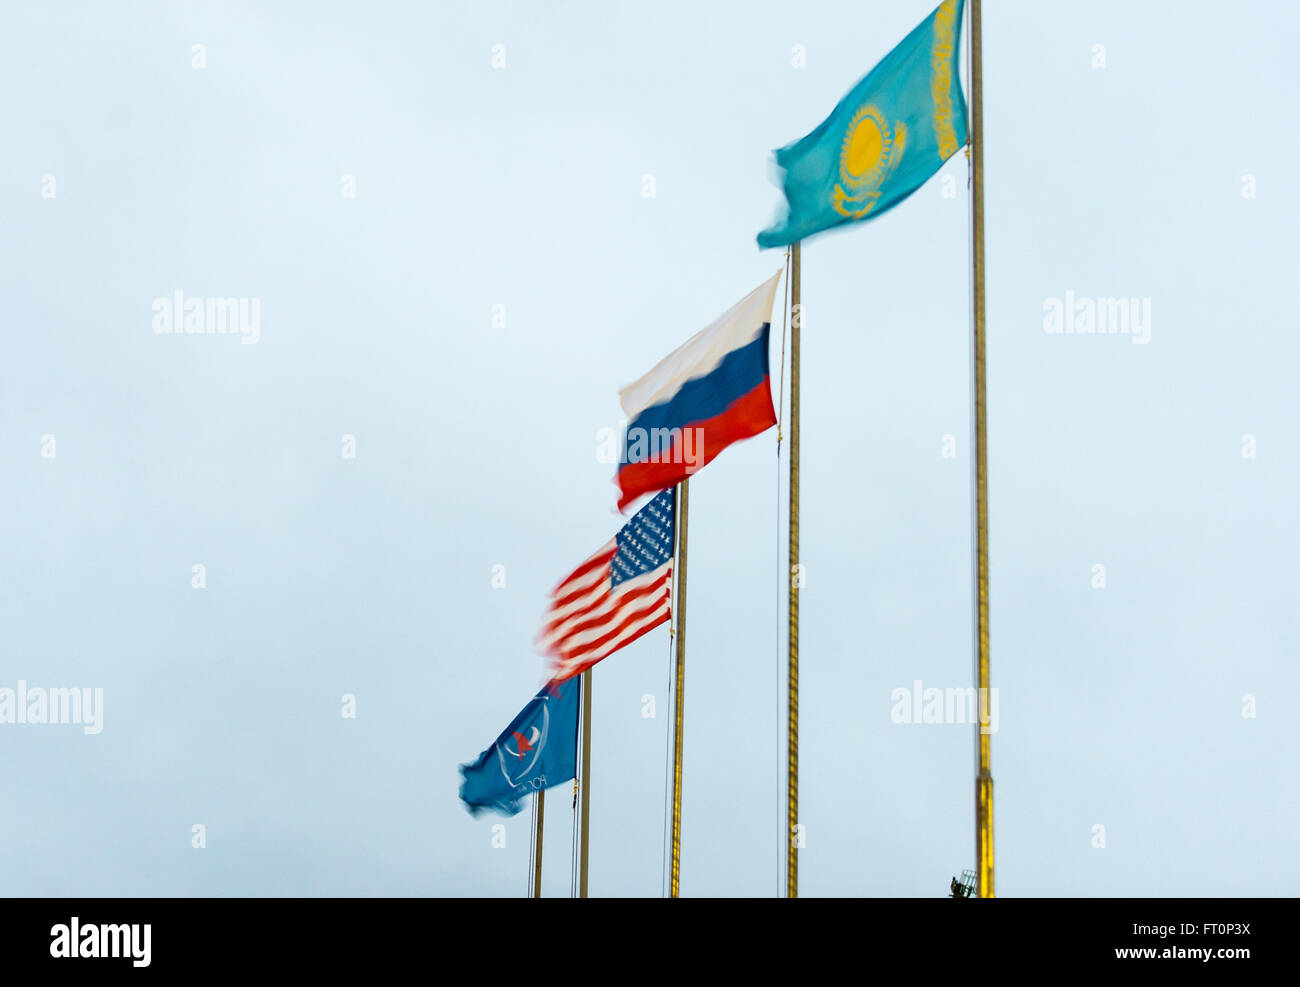 Flags of the U.S., Russia, Roscosmos, and Kazakhstan are seen blowing in the high winds that delayed operations - Stock Image